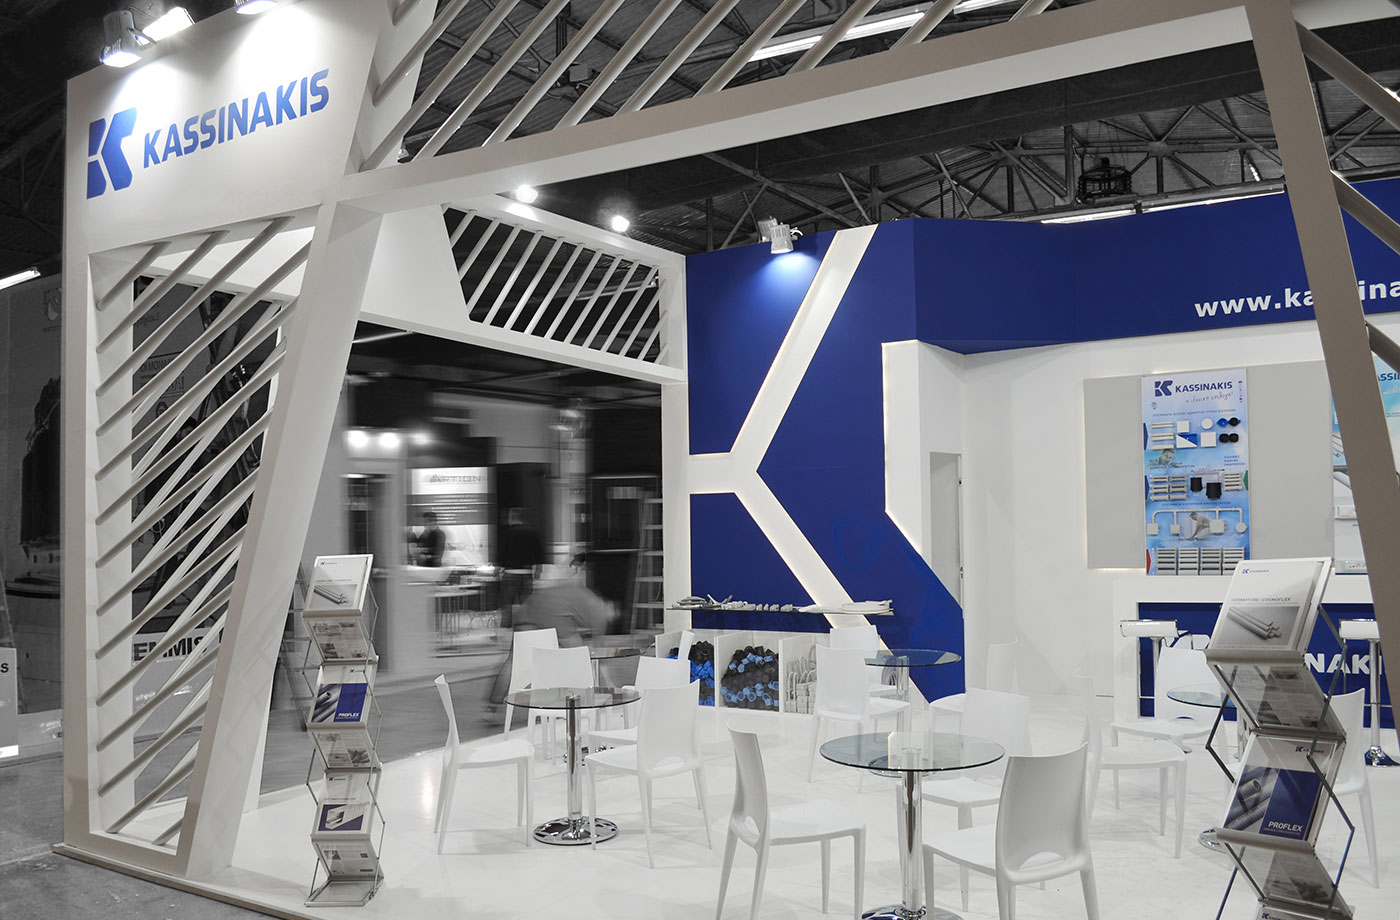 Exhibition Stand Projects : Kassinakis exhibition stand